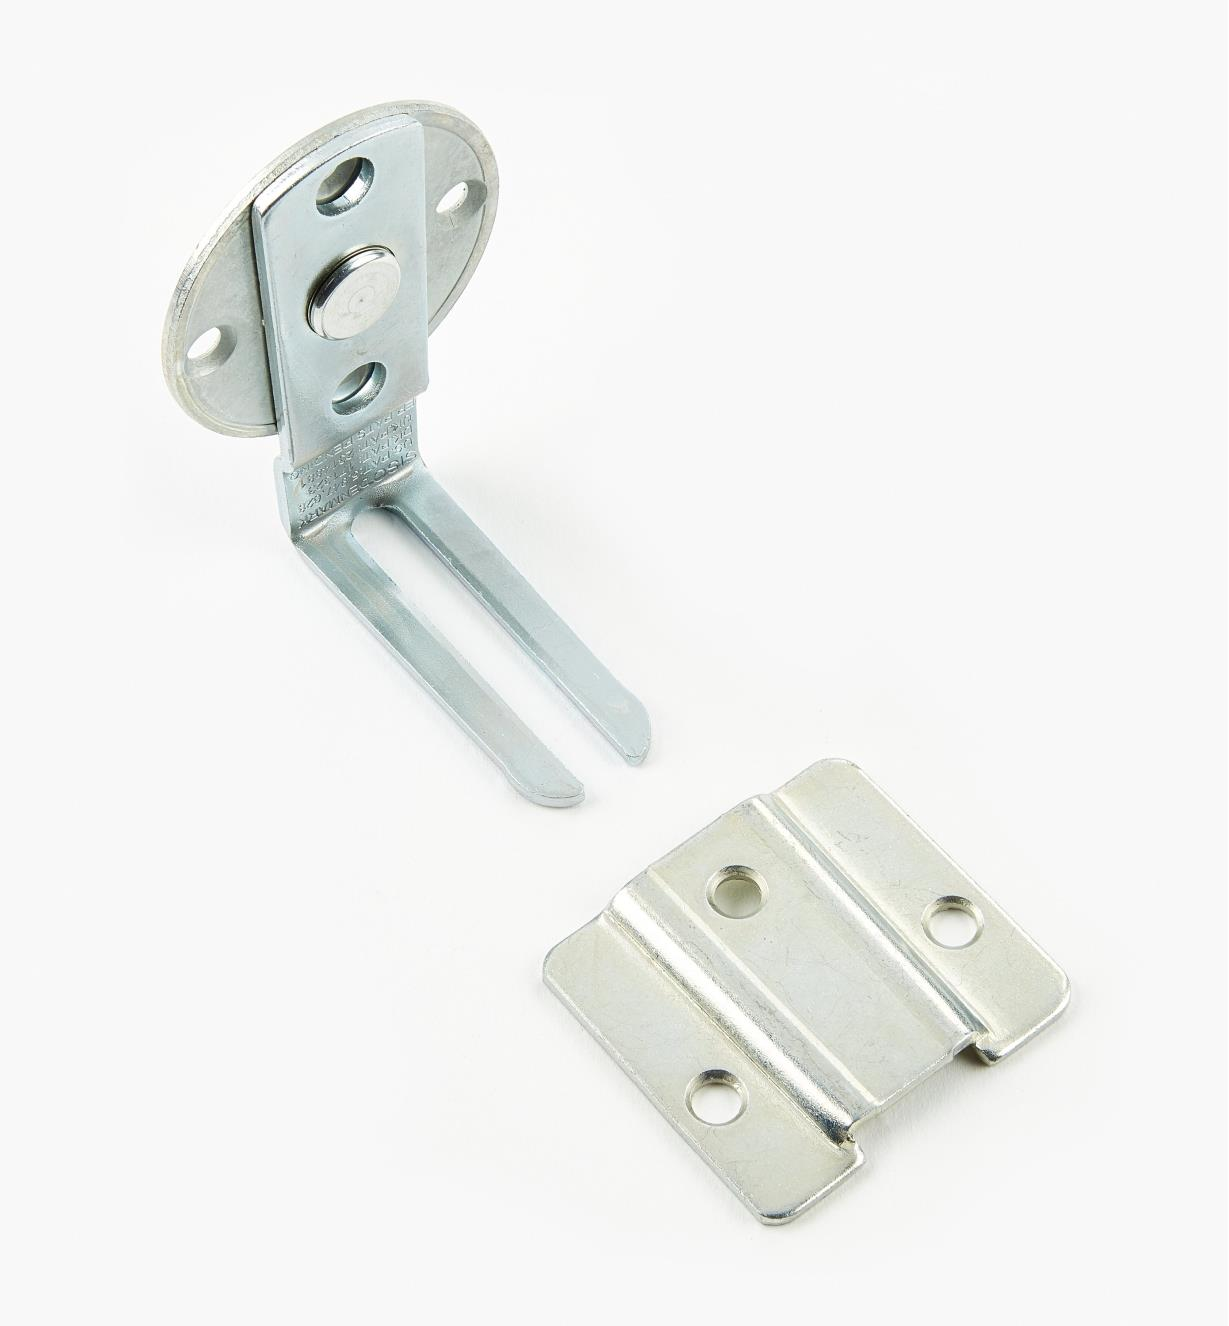 00U1102 - 90° Panel Connector Set